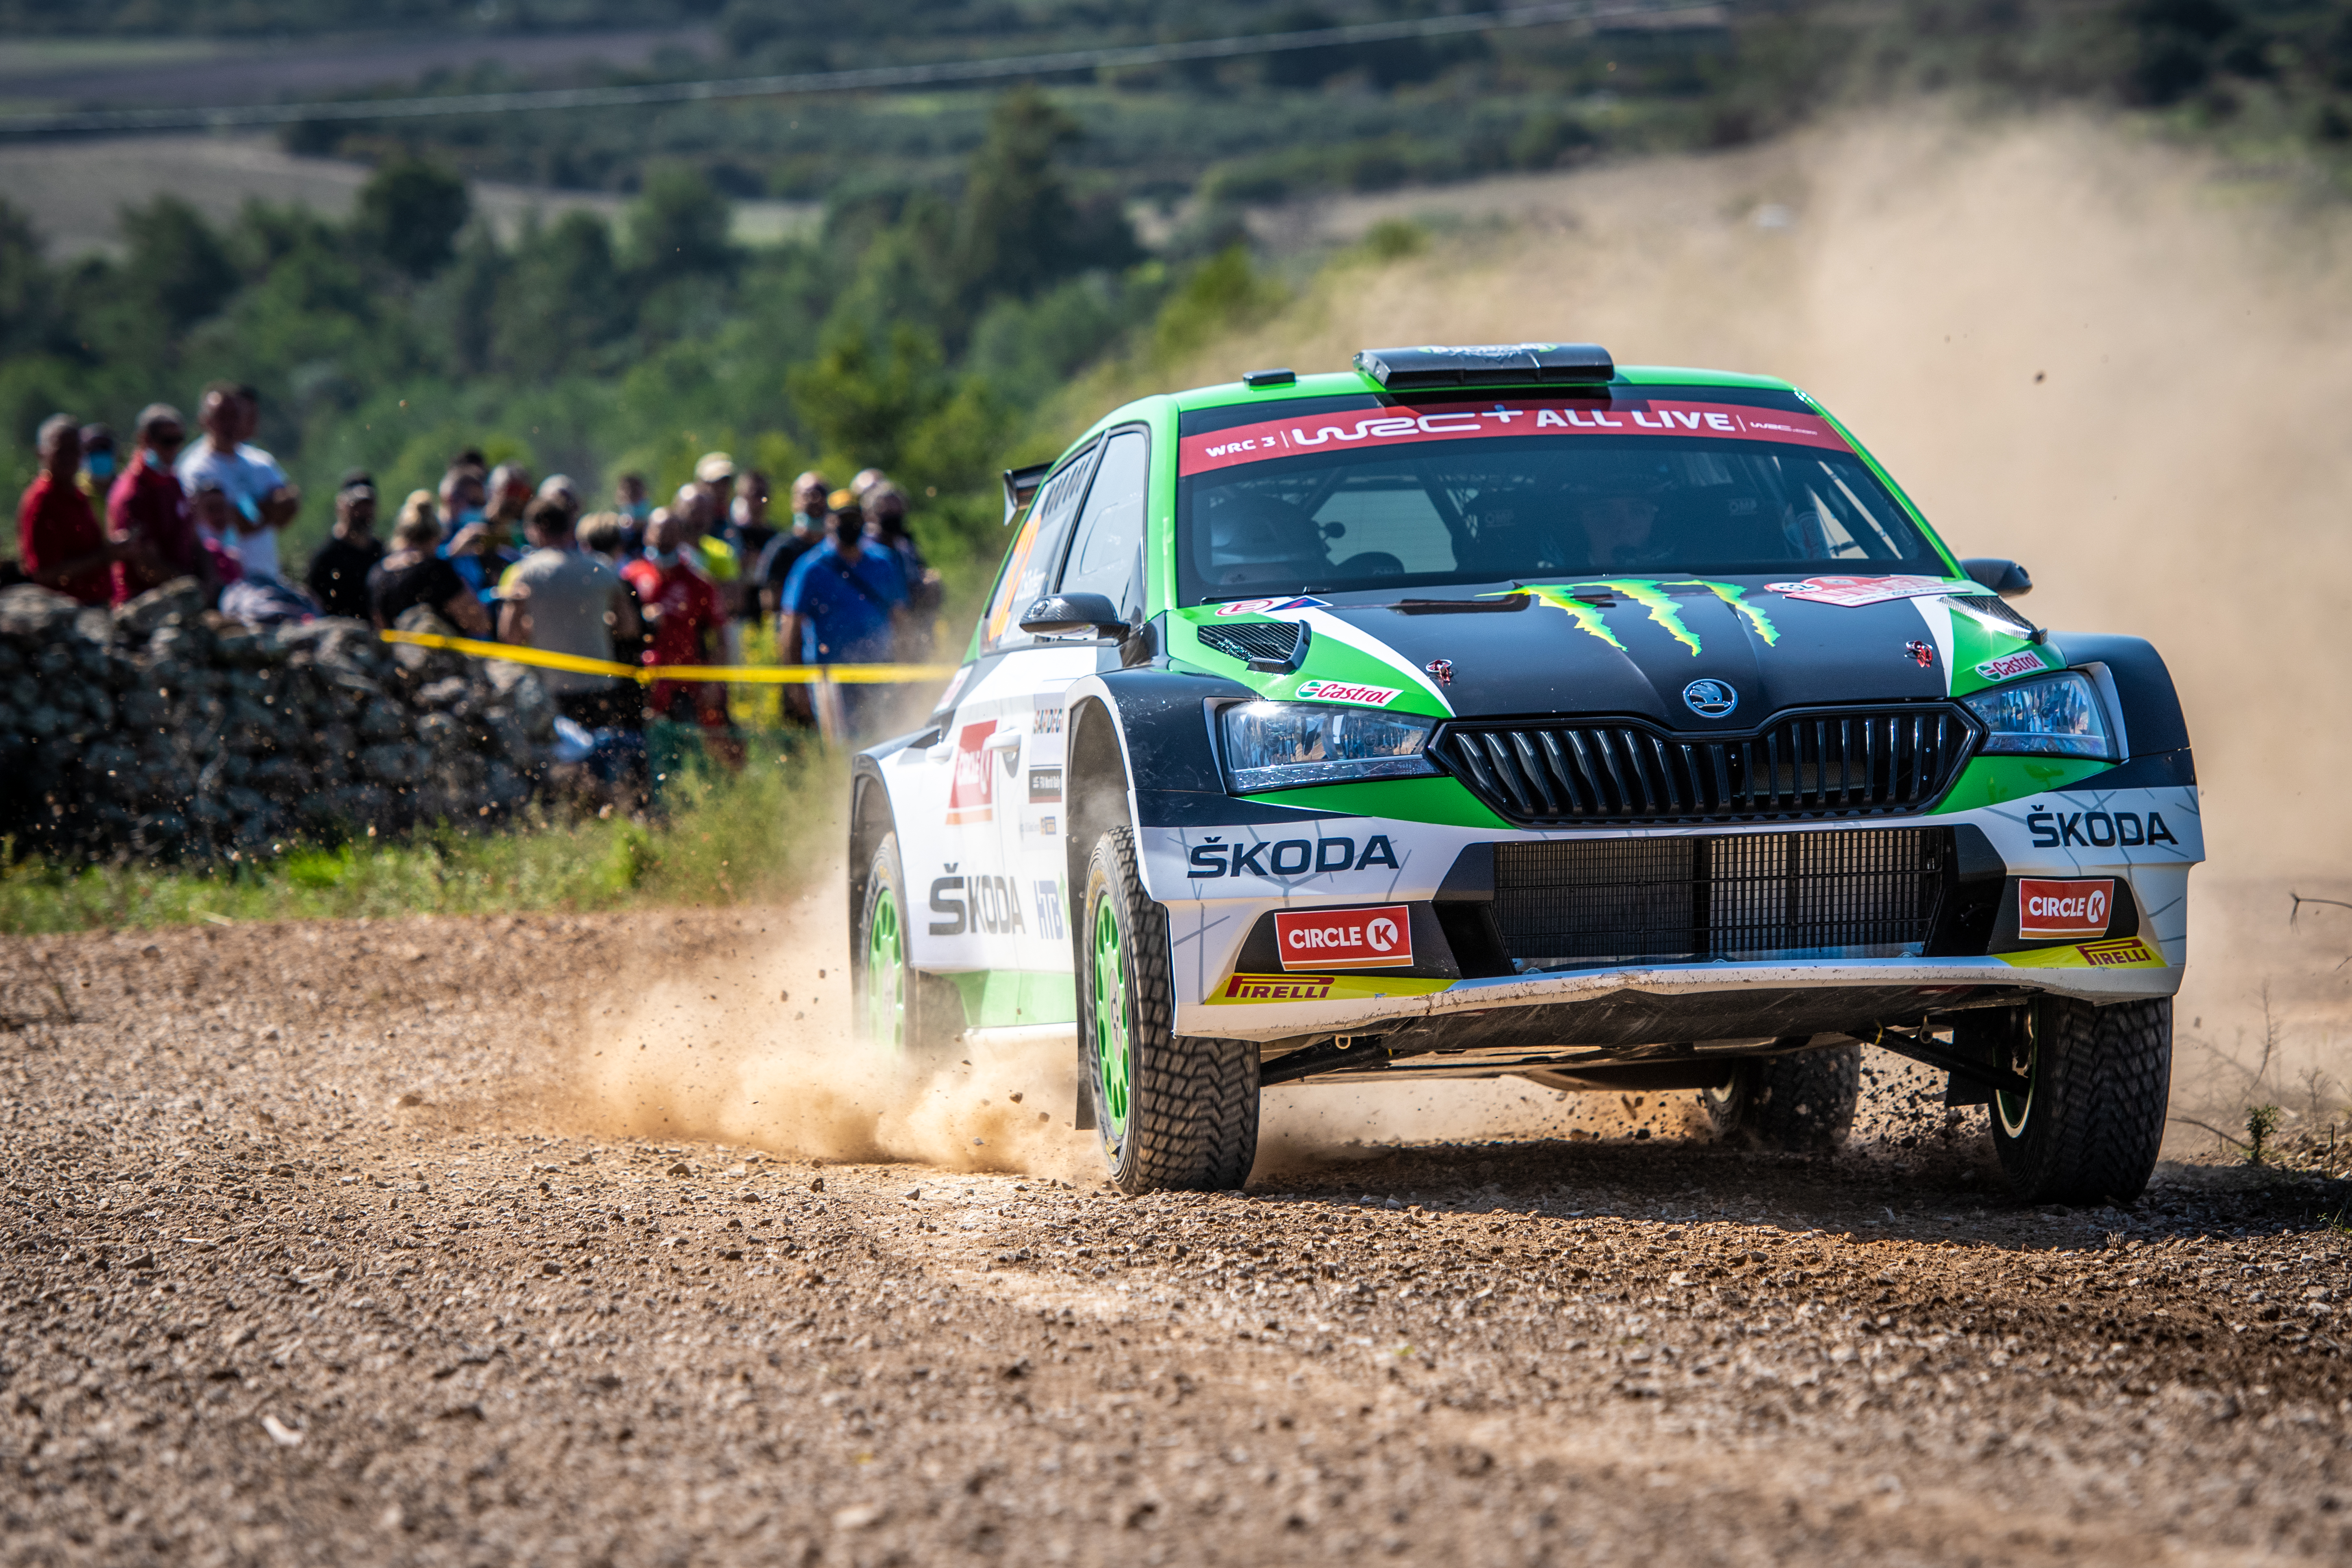 Rally Italia Sardegna: Two SKODA crews on top of WRC2 and WRC3 after tough first leg - Image 2